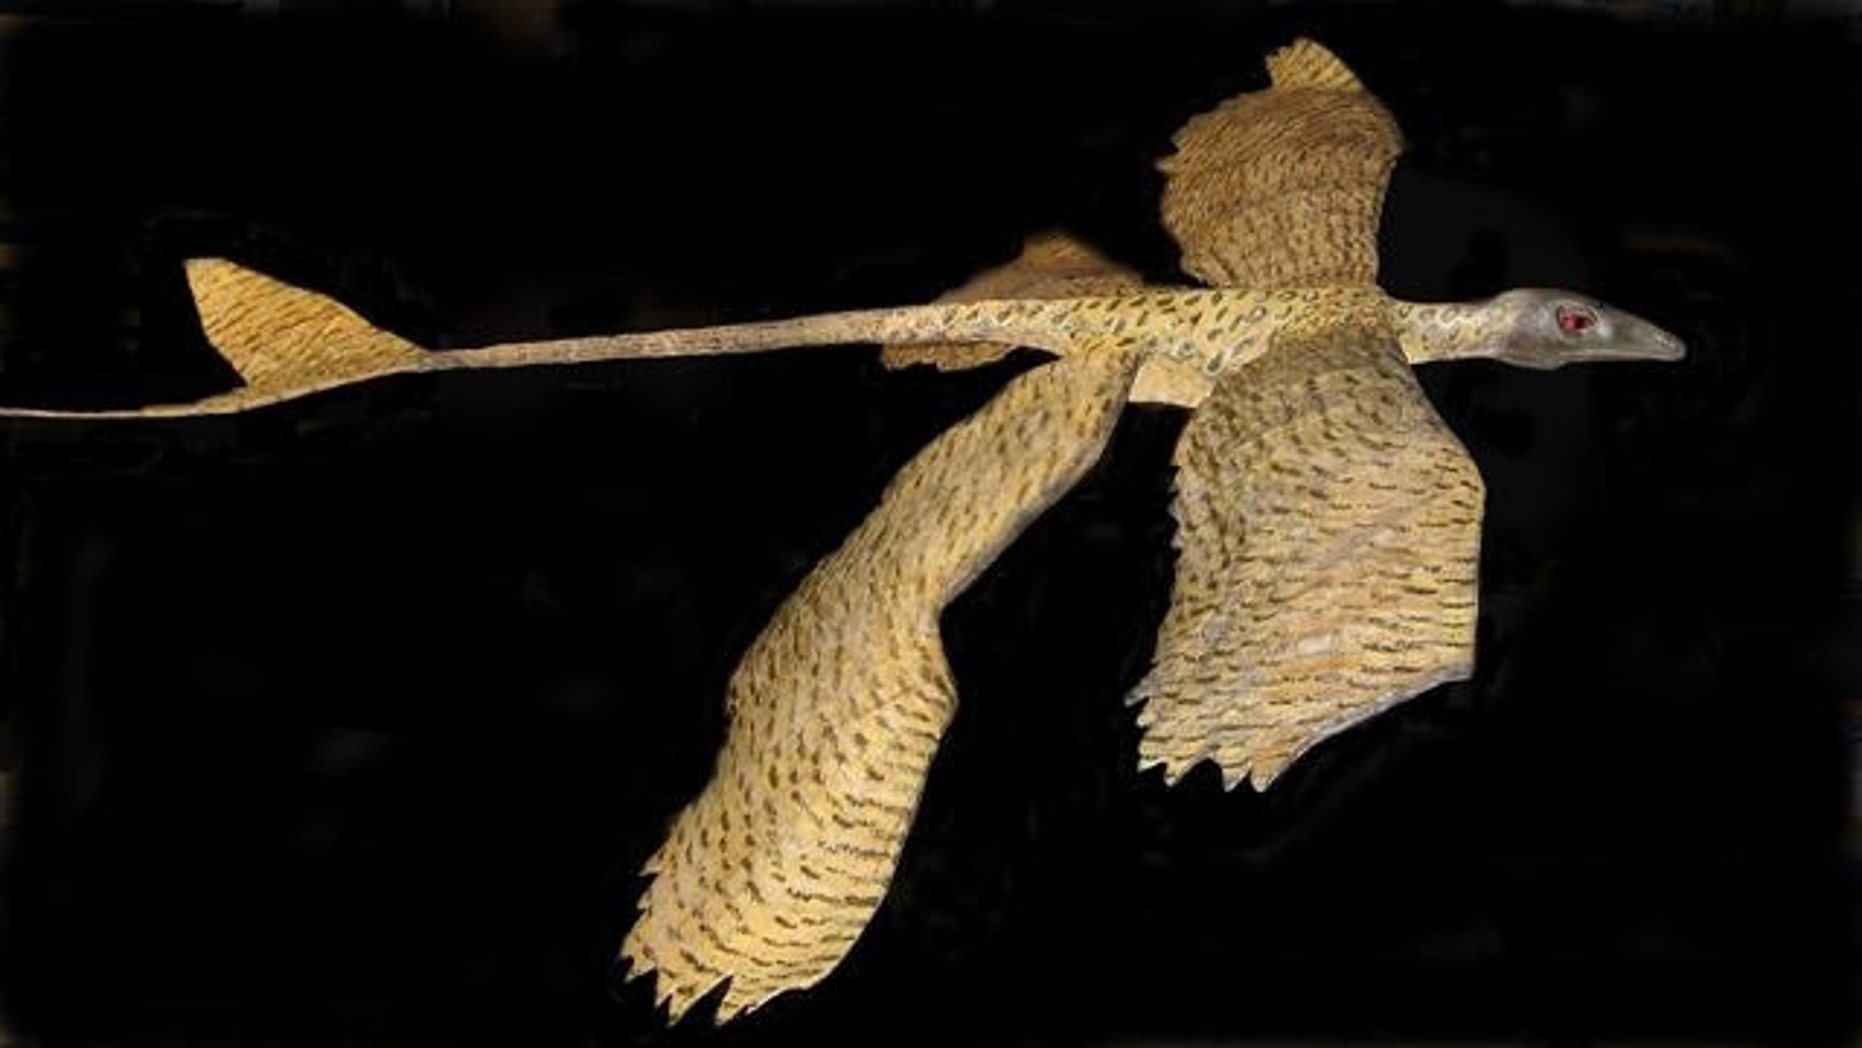 Scientists created a plastic model of a microraptor to show its gliding capabilities.